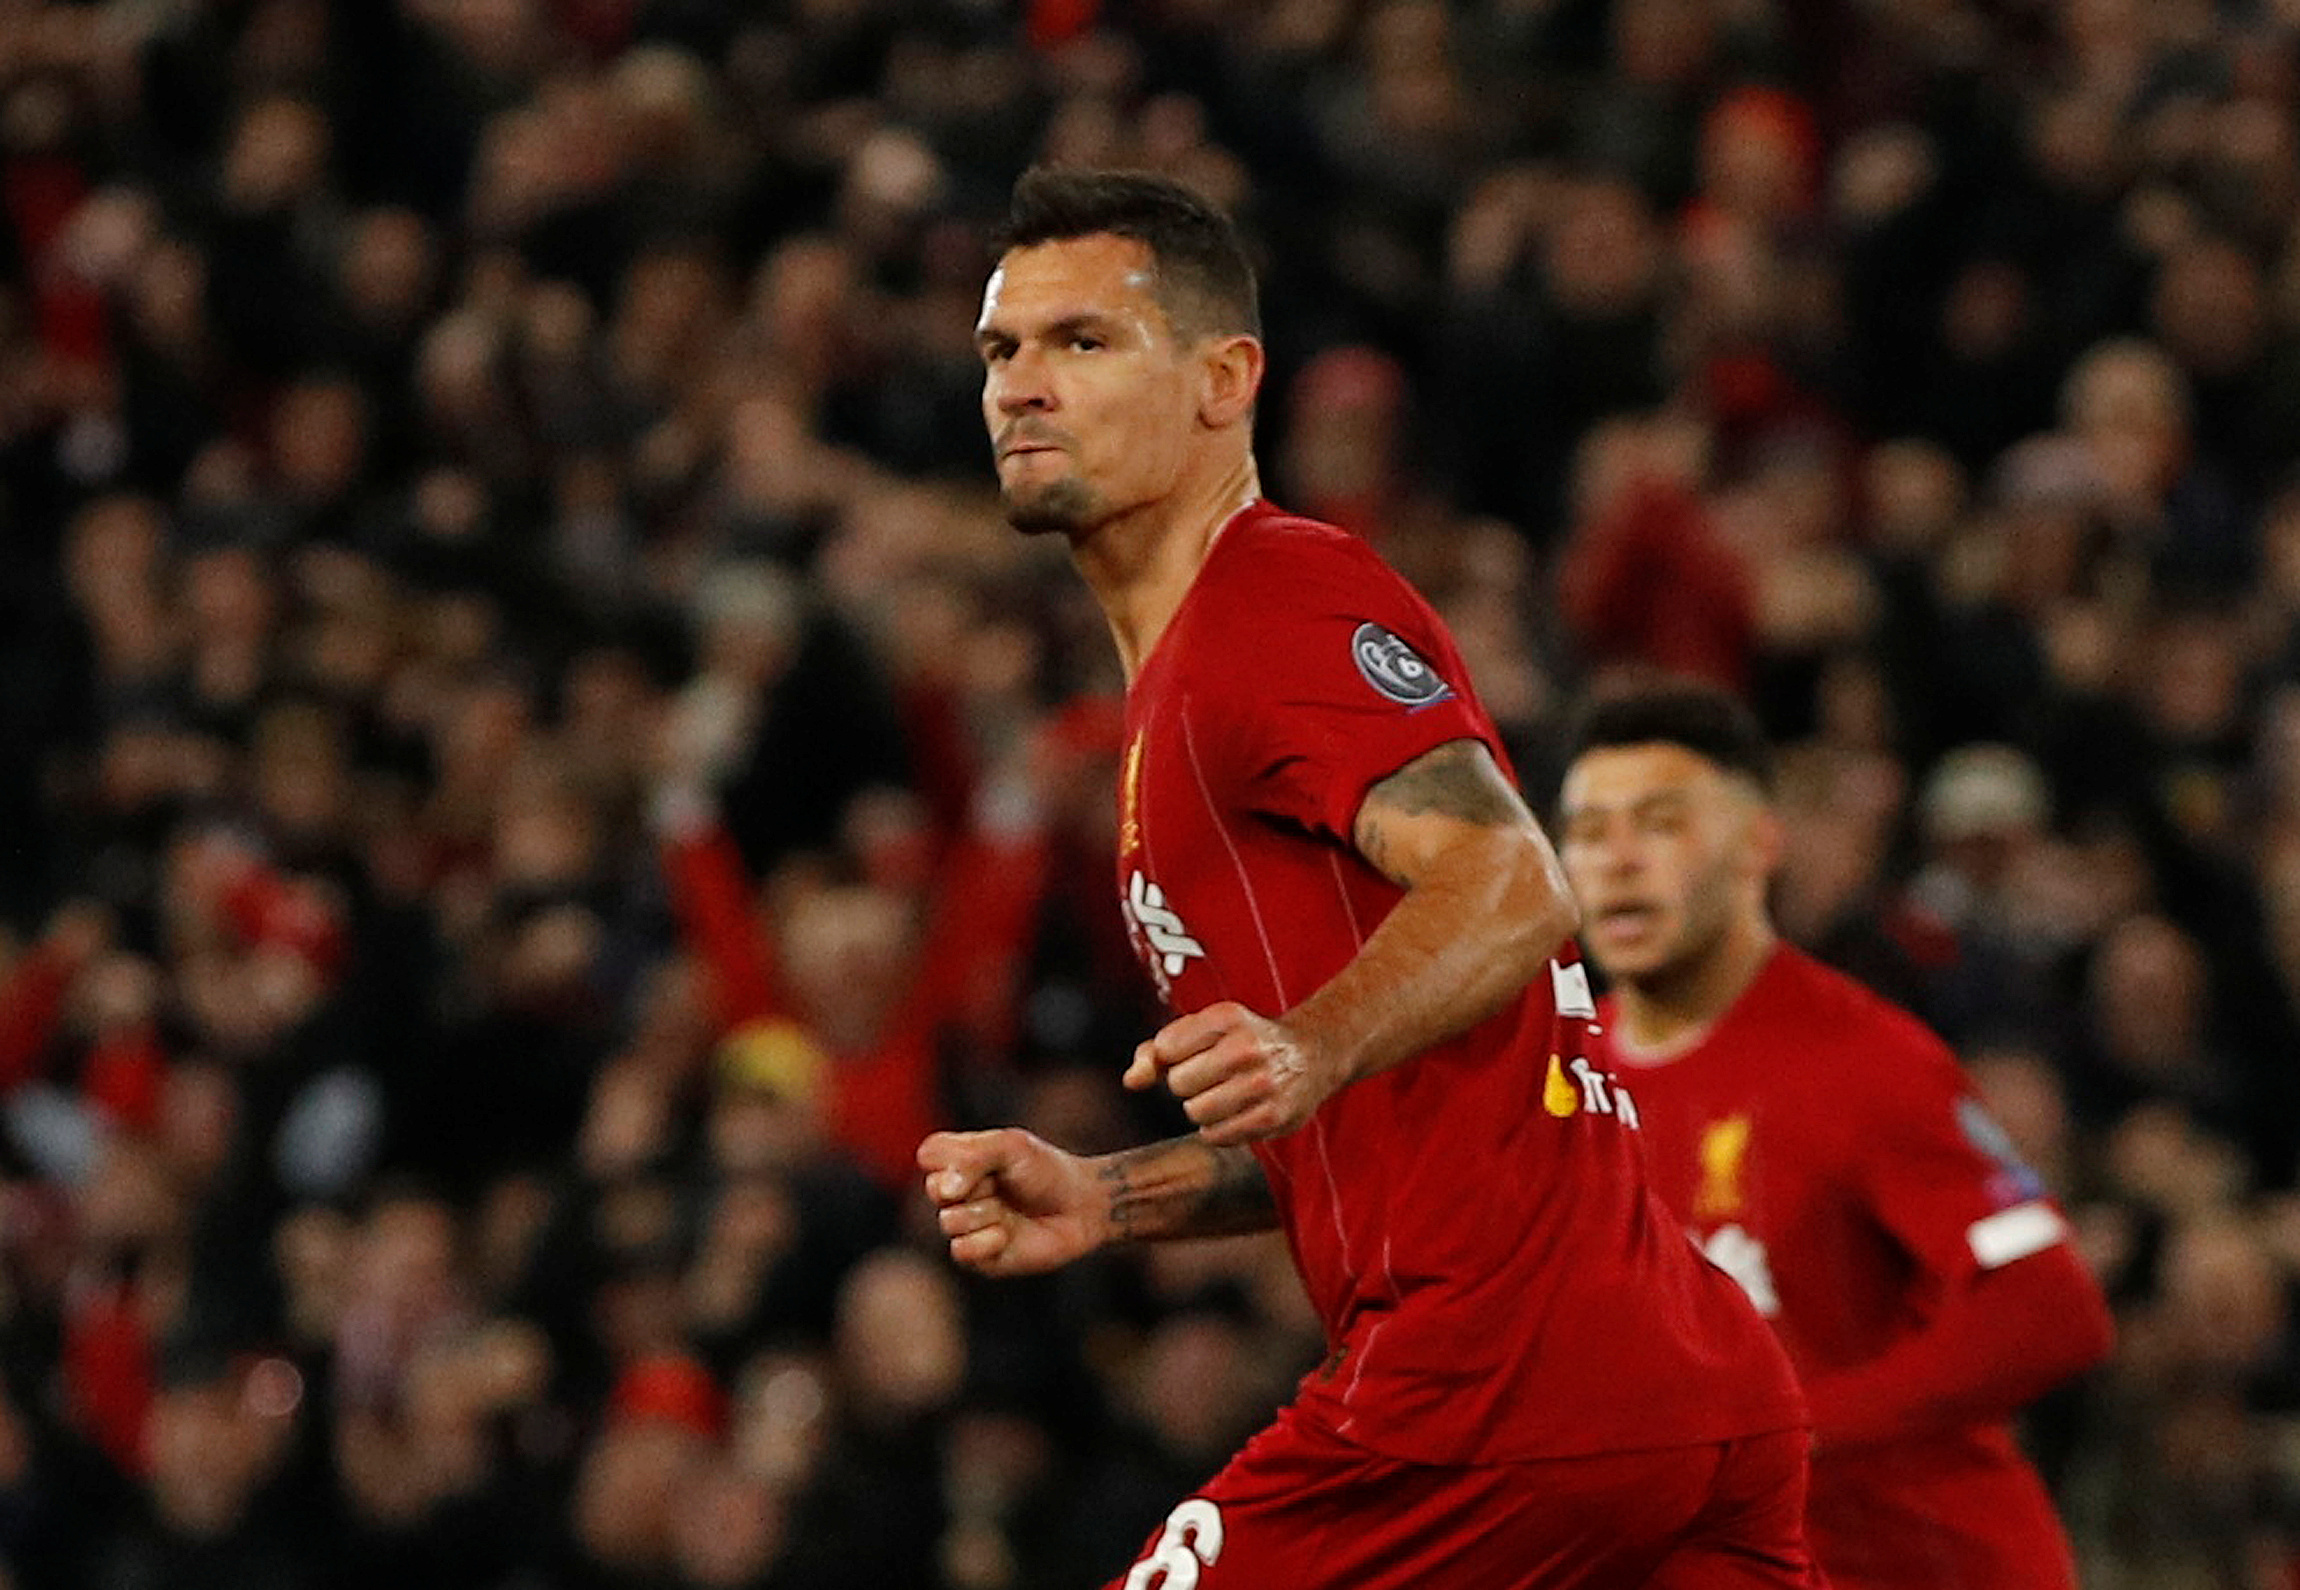 Soccer Football - Champions League - Group E - Liverpool v Napoli - Anfield, Liverpool, Britain - November 27, 2019  Liverpool's Dejan Lovren celebrates scoring their first goal   REUTERS/Phil Noble - RC2XJD96TS4P